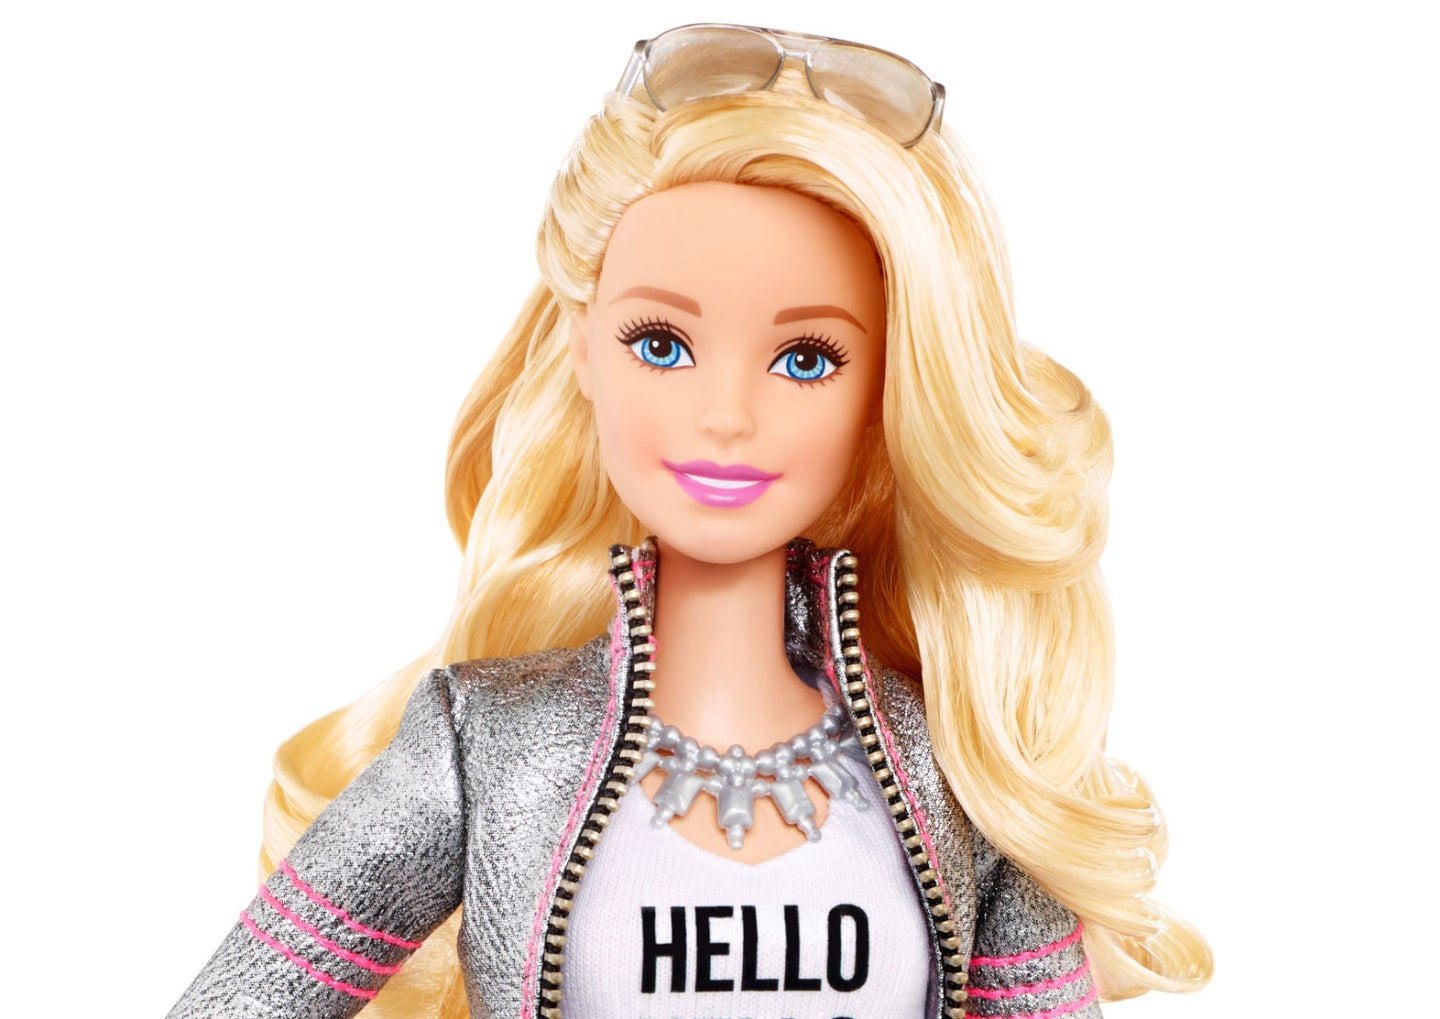 Barbie Learns To Chat Using Artificial Intelligence